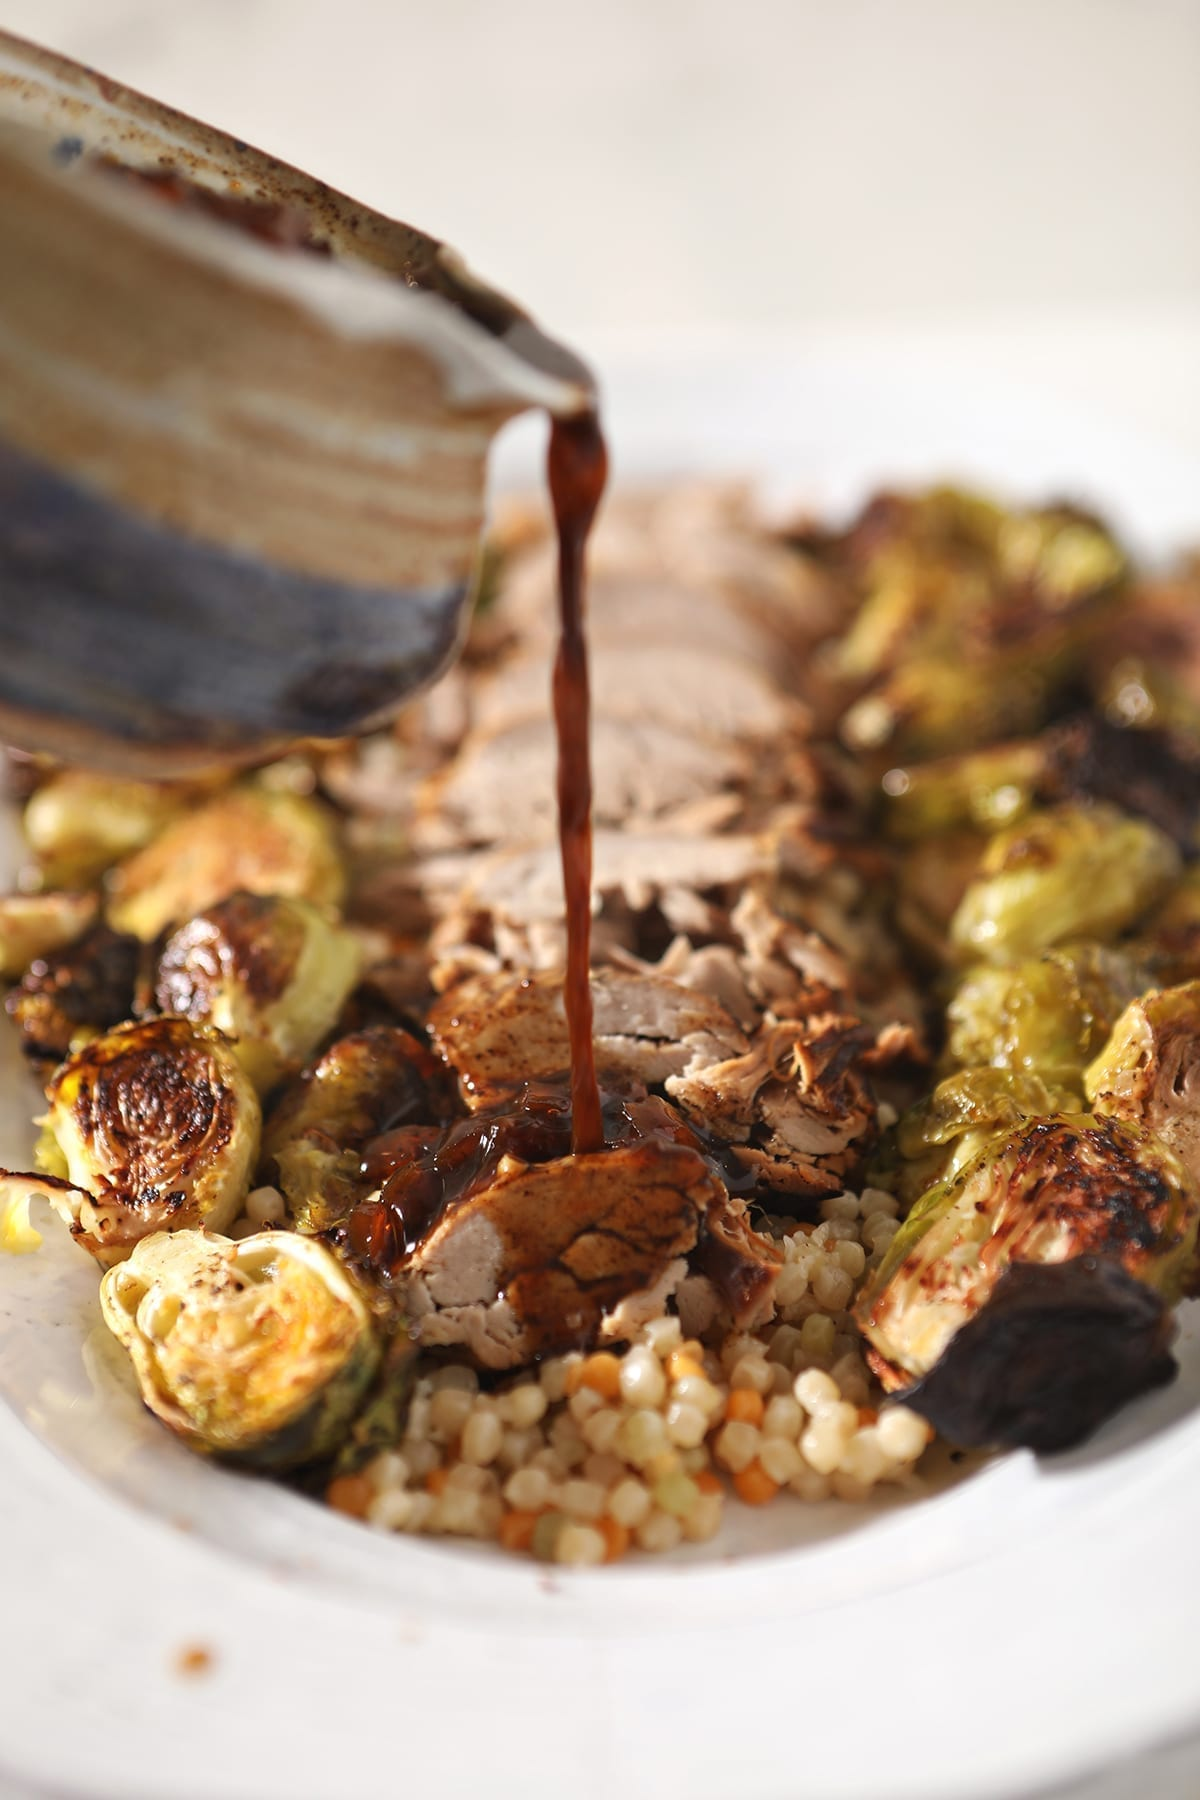 A sauce pours into a sliced pork tenderloin on a white platter with roasted brussels sprouts